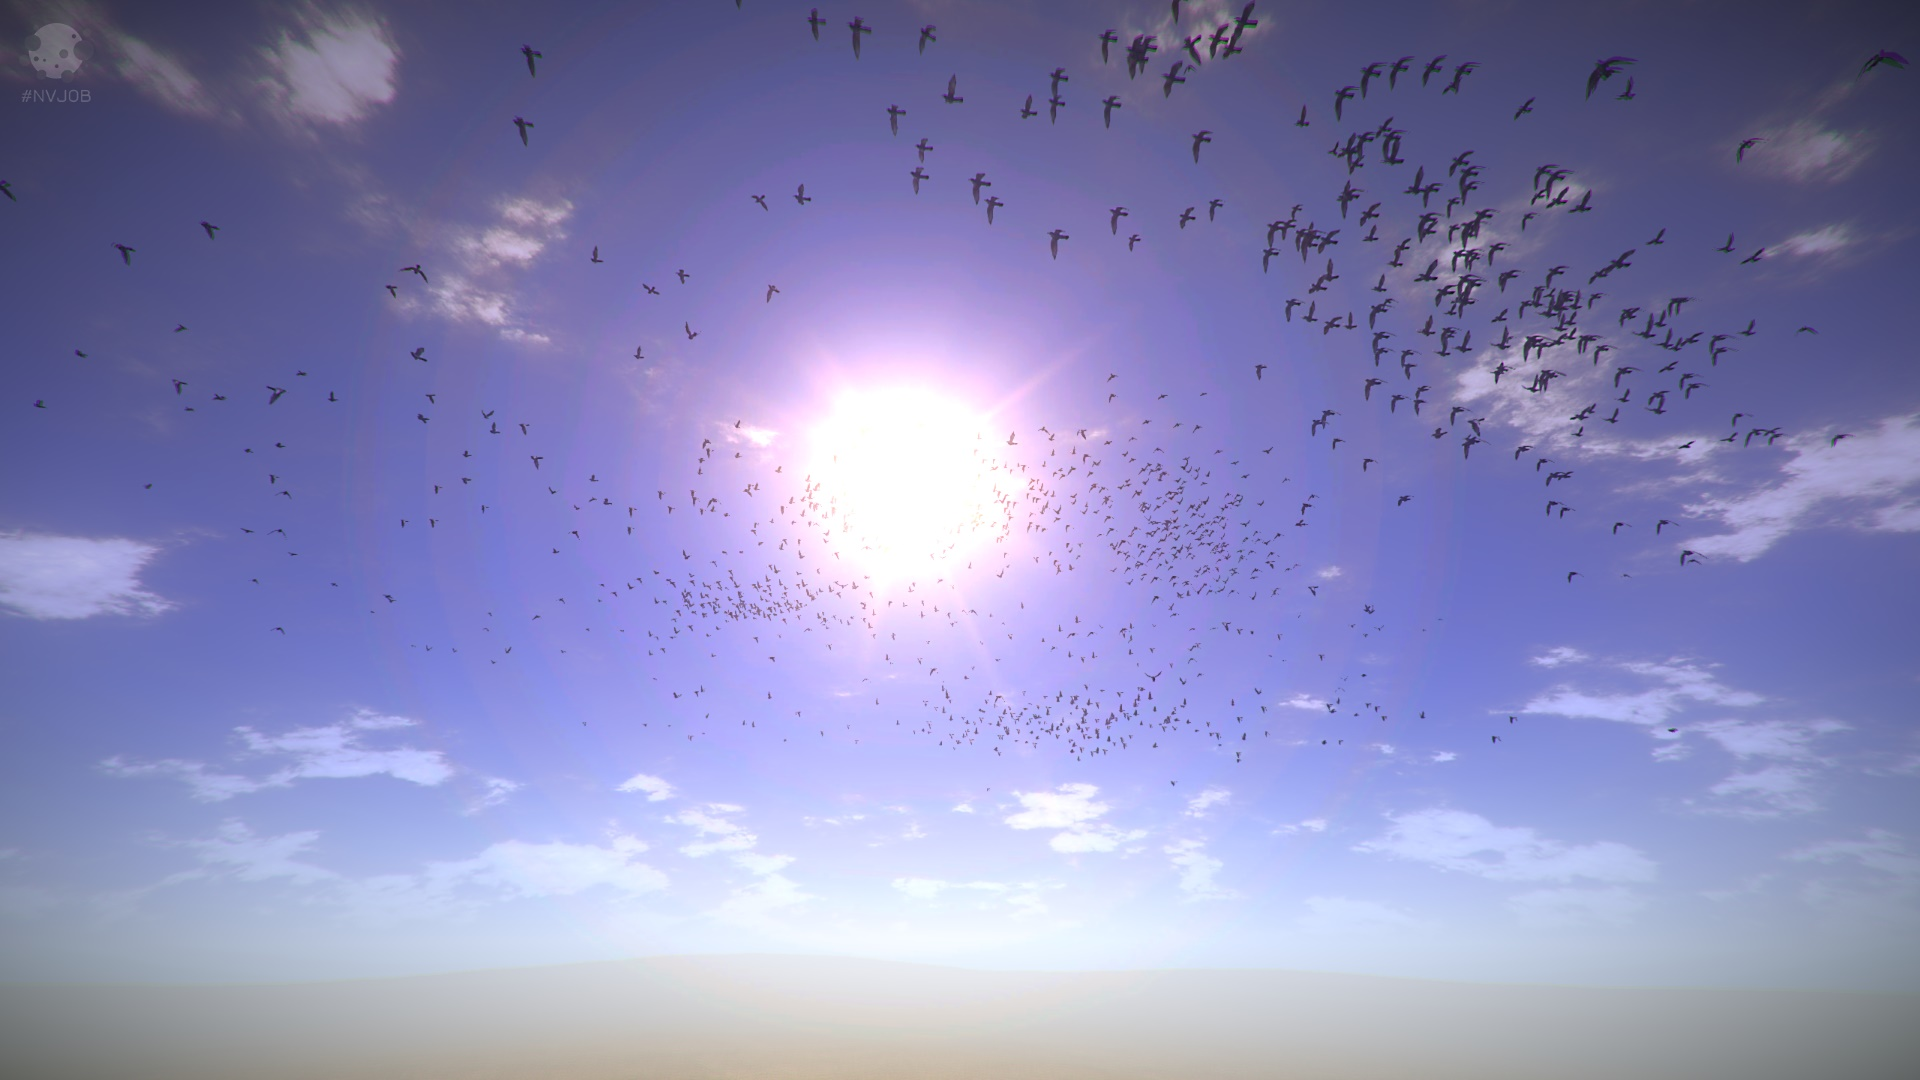 #NVJOB Simple Boids (Flocks of Birds, Fish and Insects). Flocking Simulation.